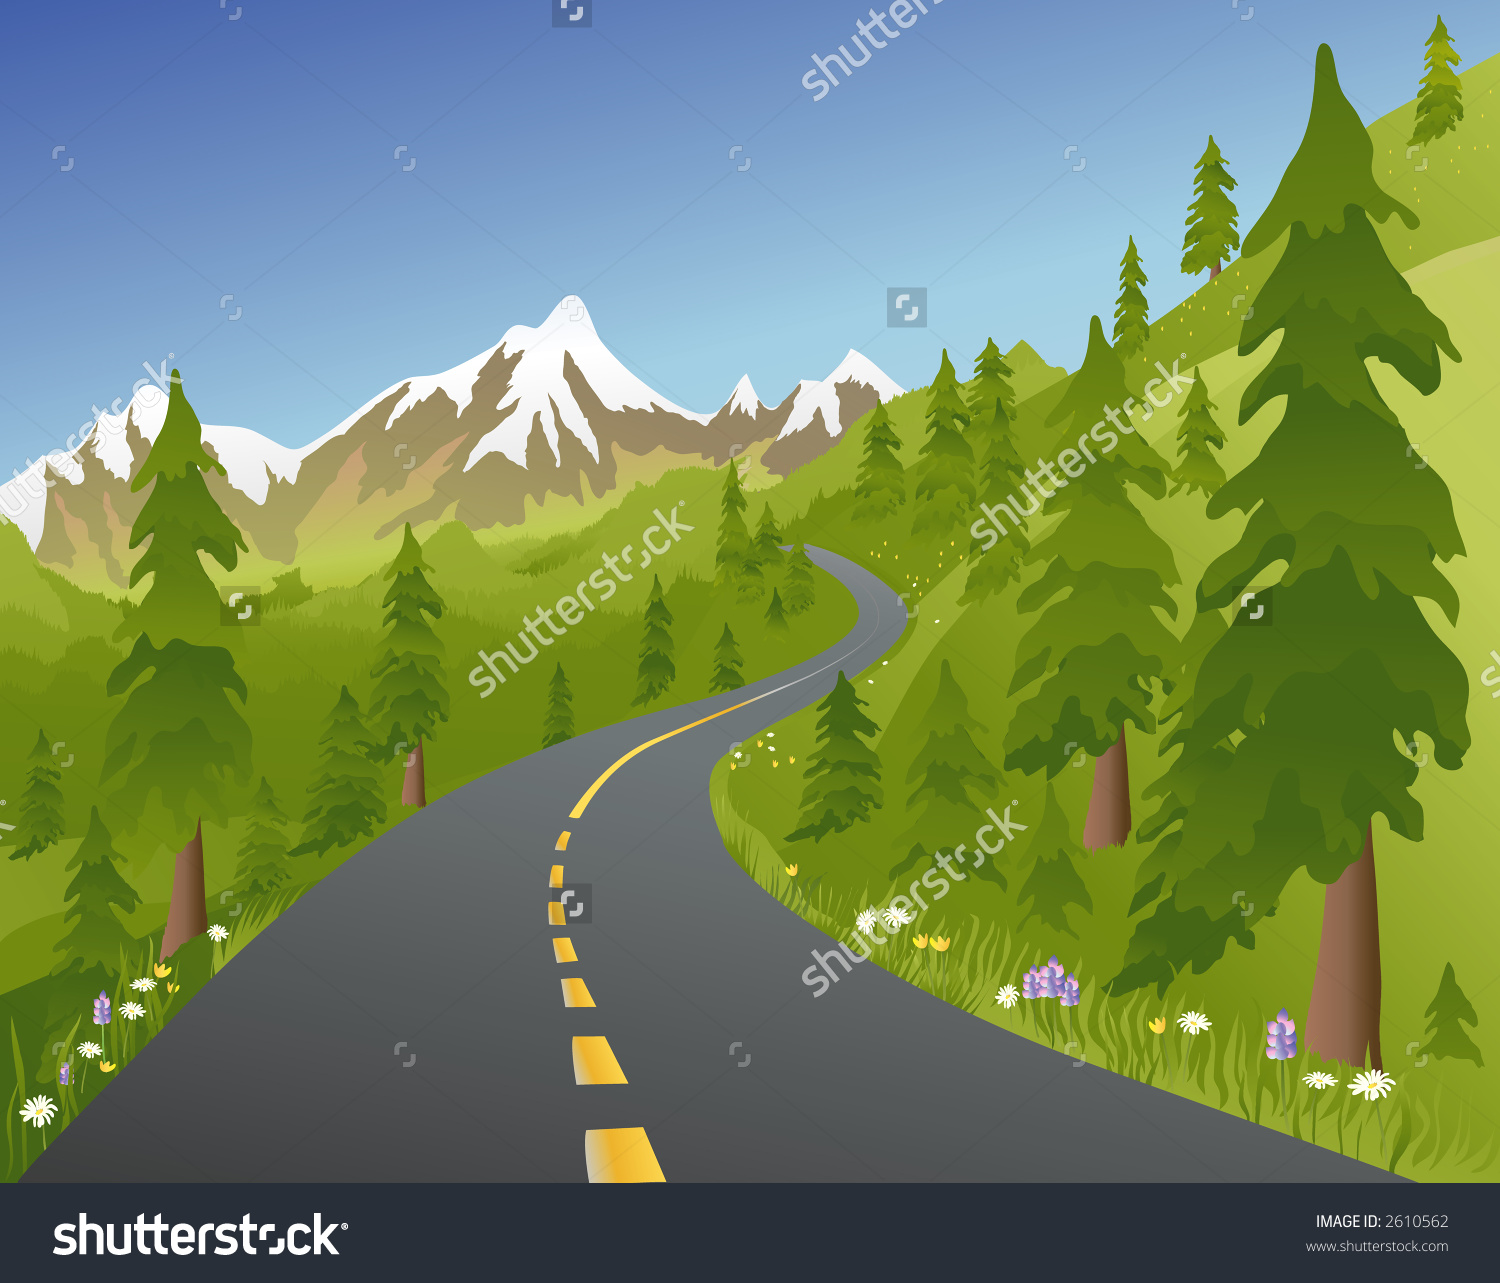 Mountain road clipart - Clipground Simple Eye Clipart Black And White